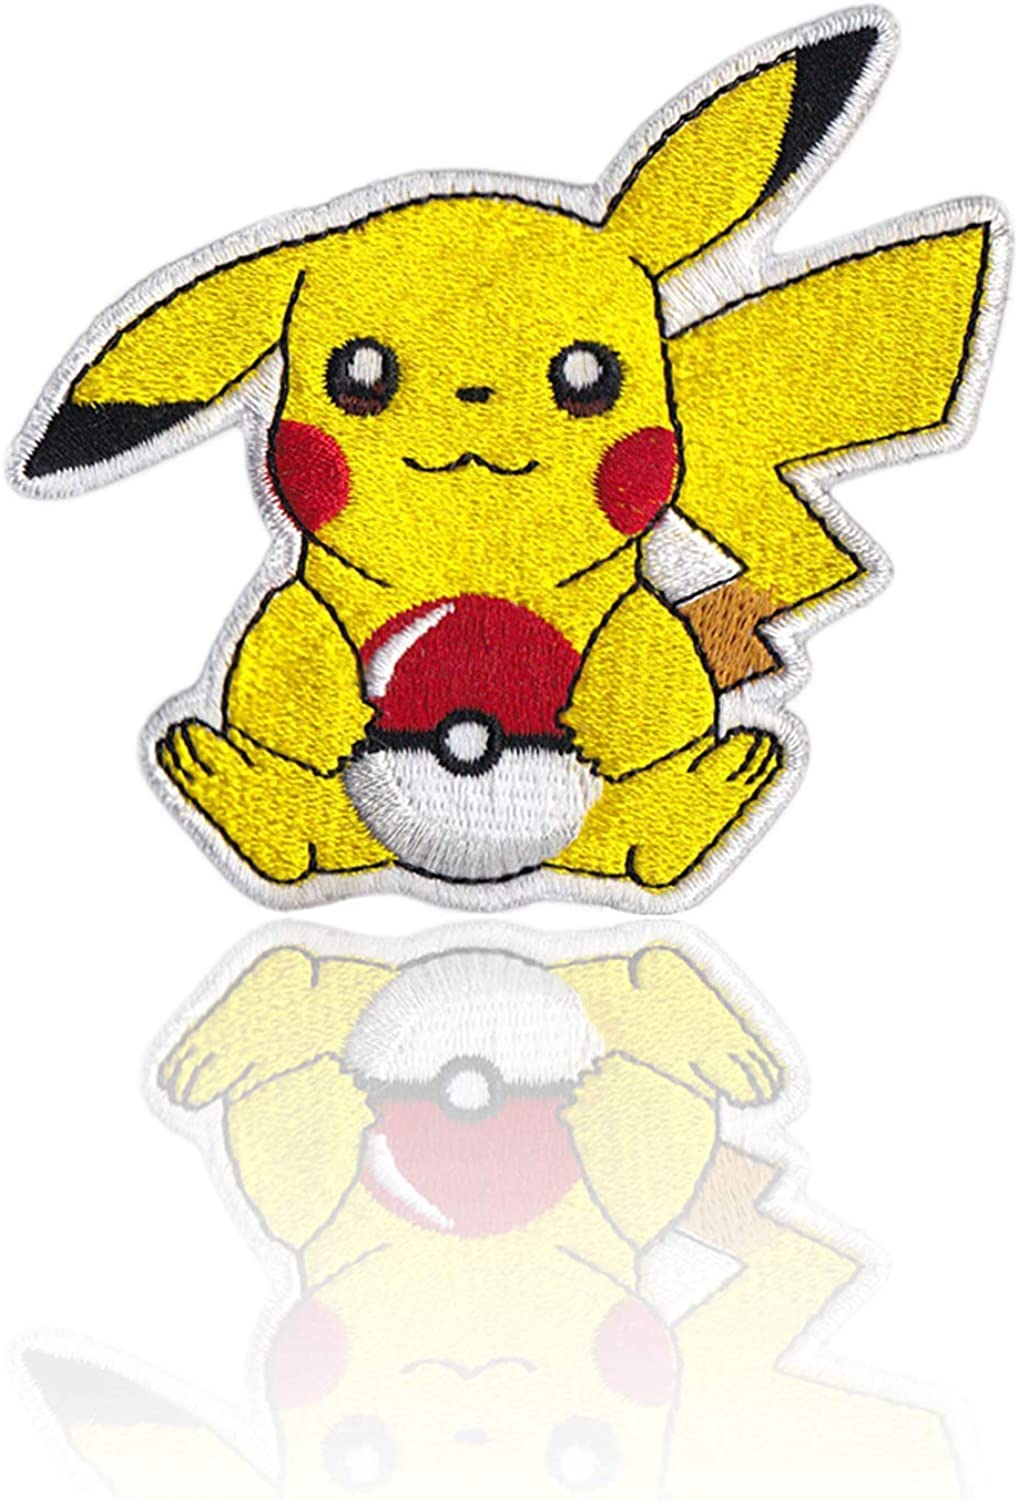 Hats Denim Jackets Bags Pikachu Pokeball Patch I Choose You Iron on /& Sew on Embroidered Applique Decoration DIY Craft for Tshirts